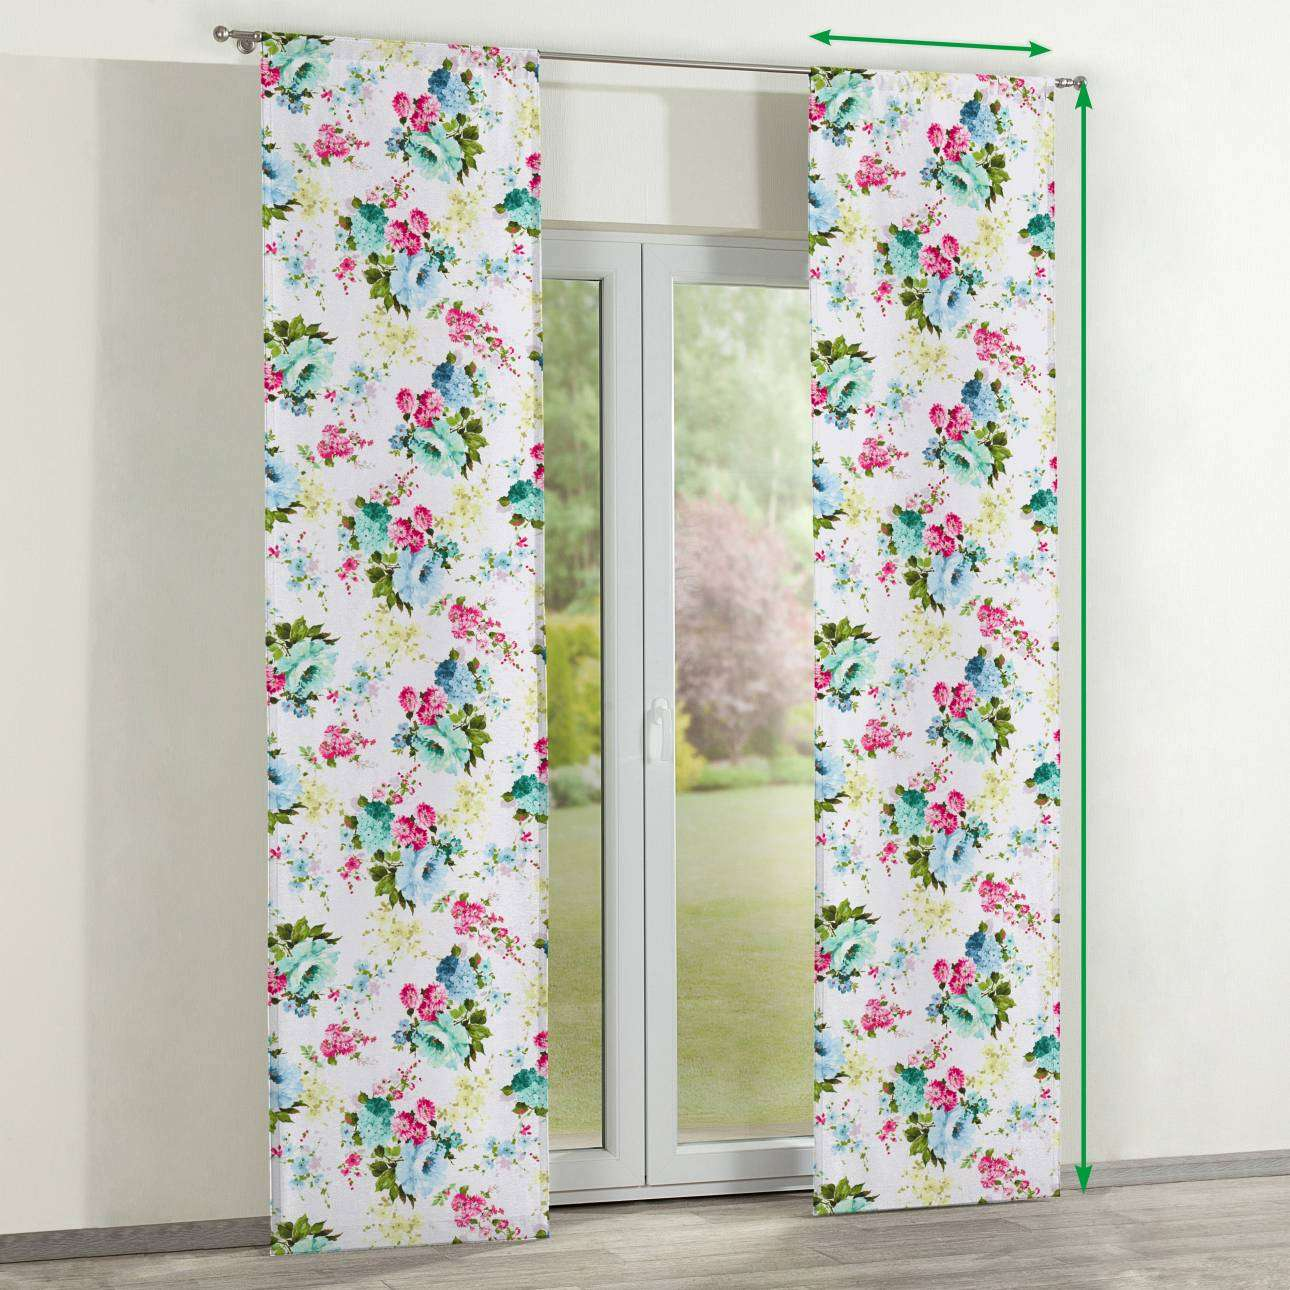 Slot panel curtains – Set of 2 in collection Monet, fabric: 140-02